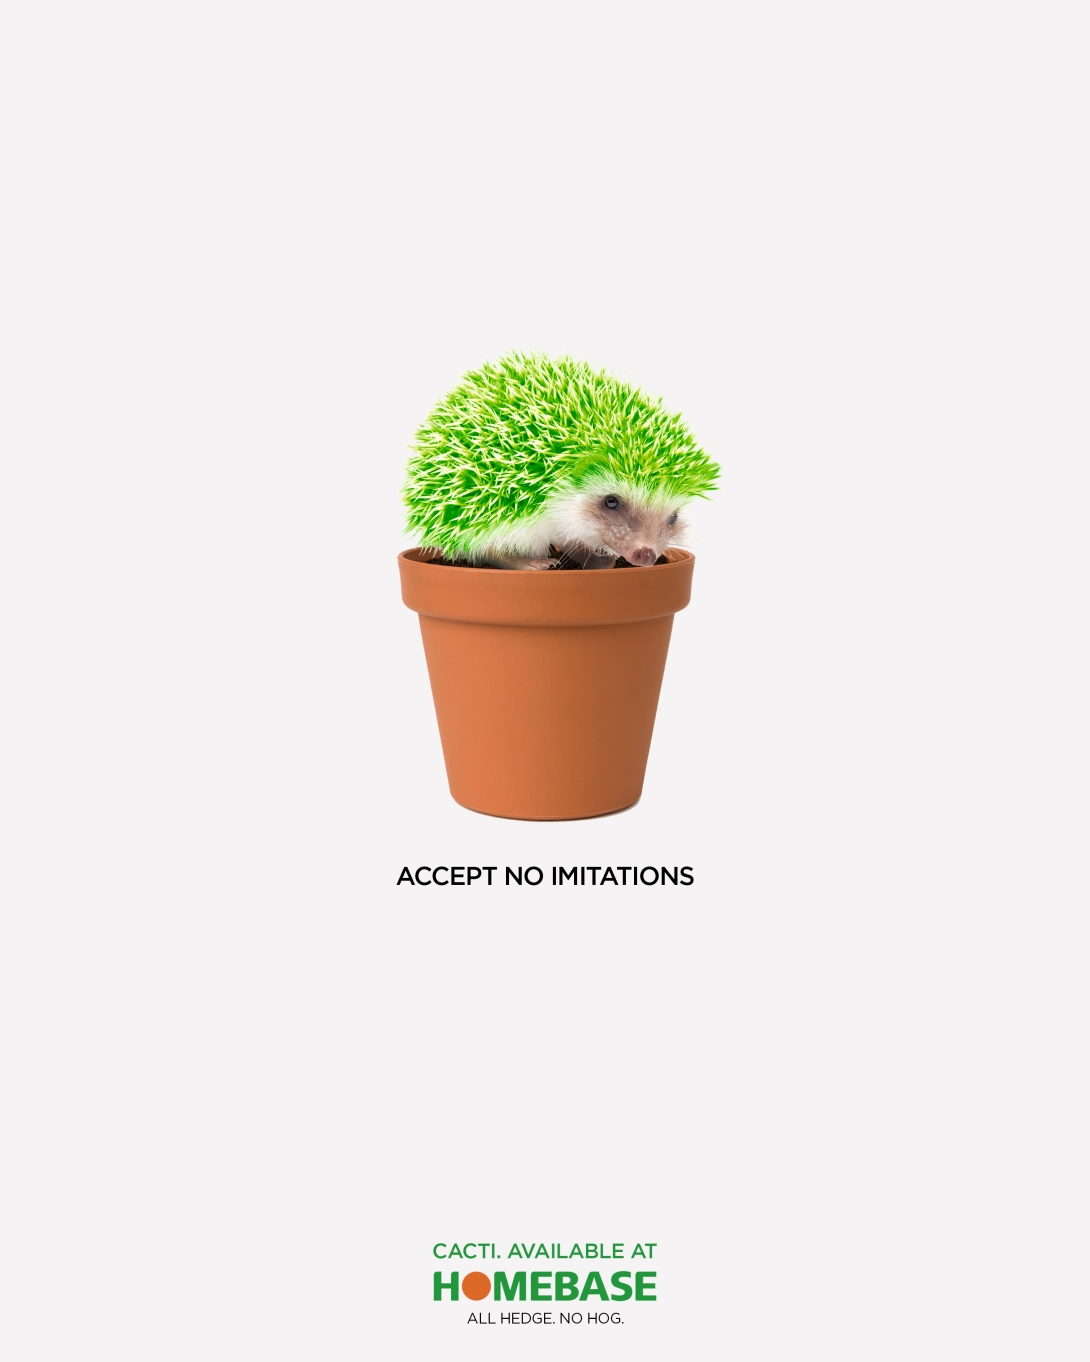 an advertising concept for a cacti retailer